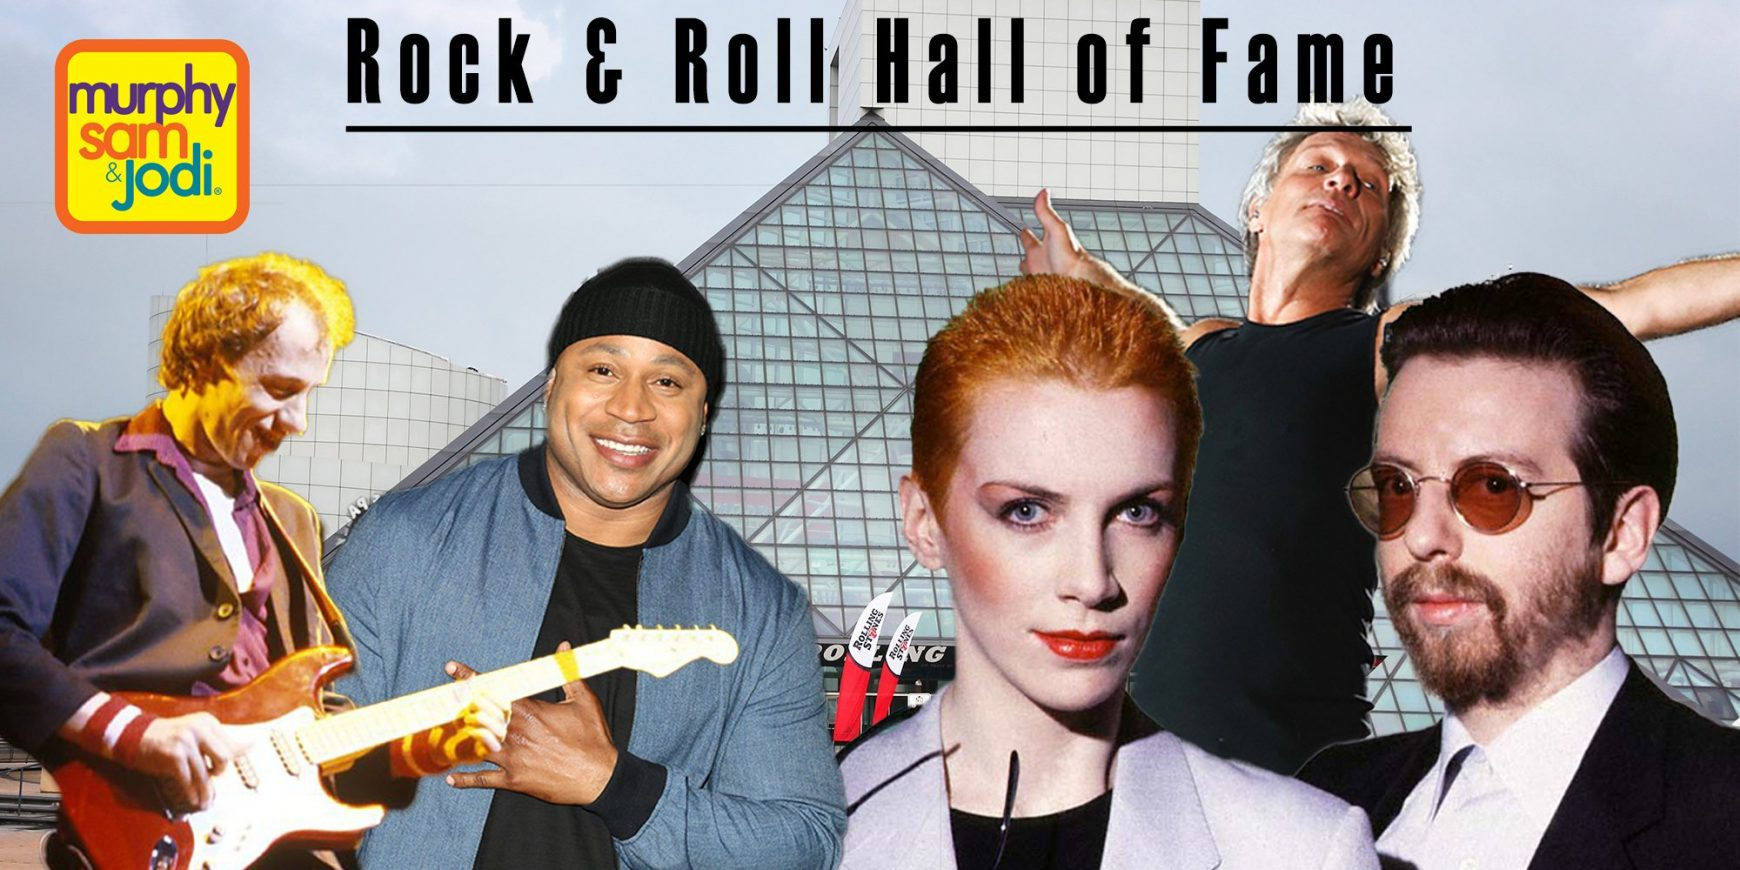 The 2018 Rock and Roll Hall of Fame Nominees